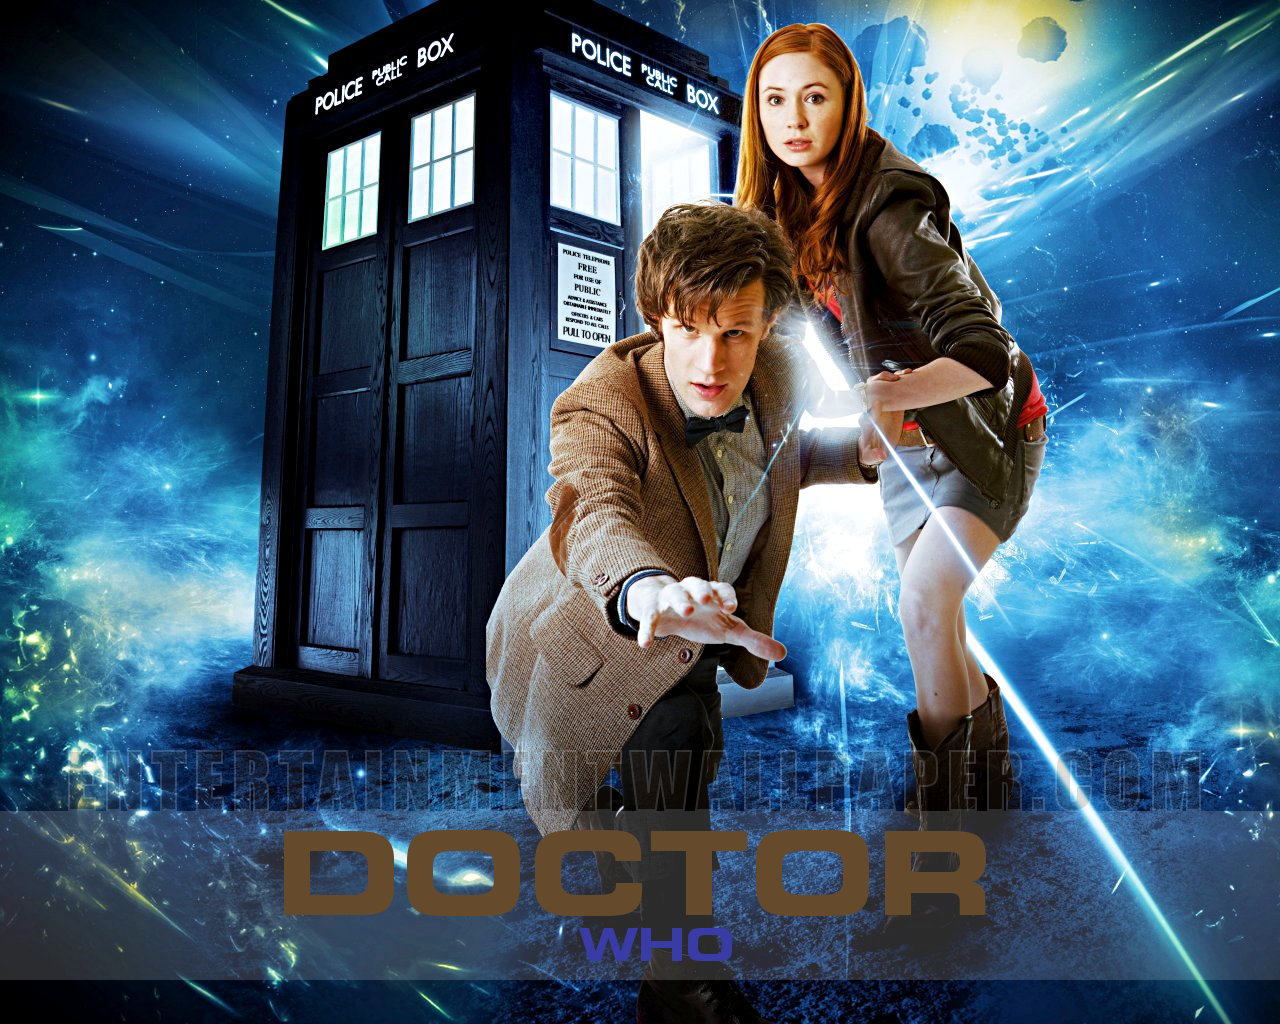 tv_doctor_who24.jpg (1280×1024)